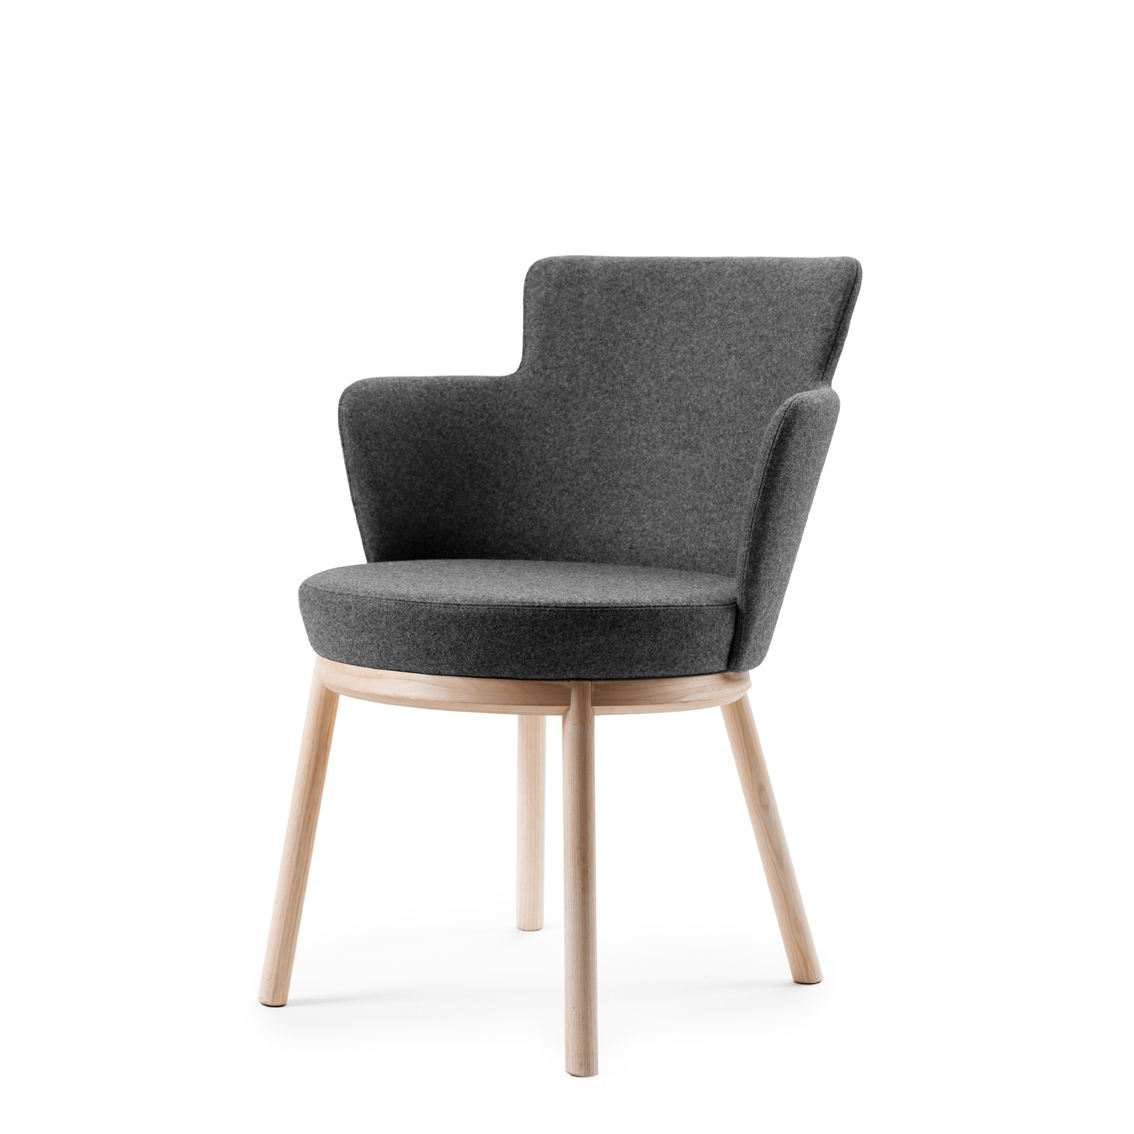 The Zen conference chair by Åke Axelsson, a Småland–born designer who has been making wood furniture pieces since the fourth grade. The ash chair has rounded legs, and can be covered in fabric or leather.